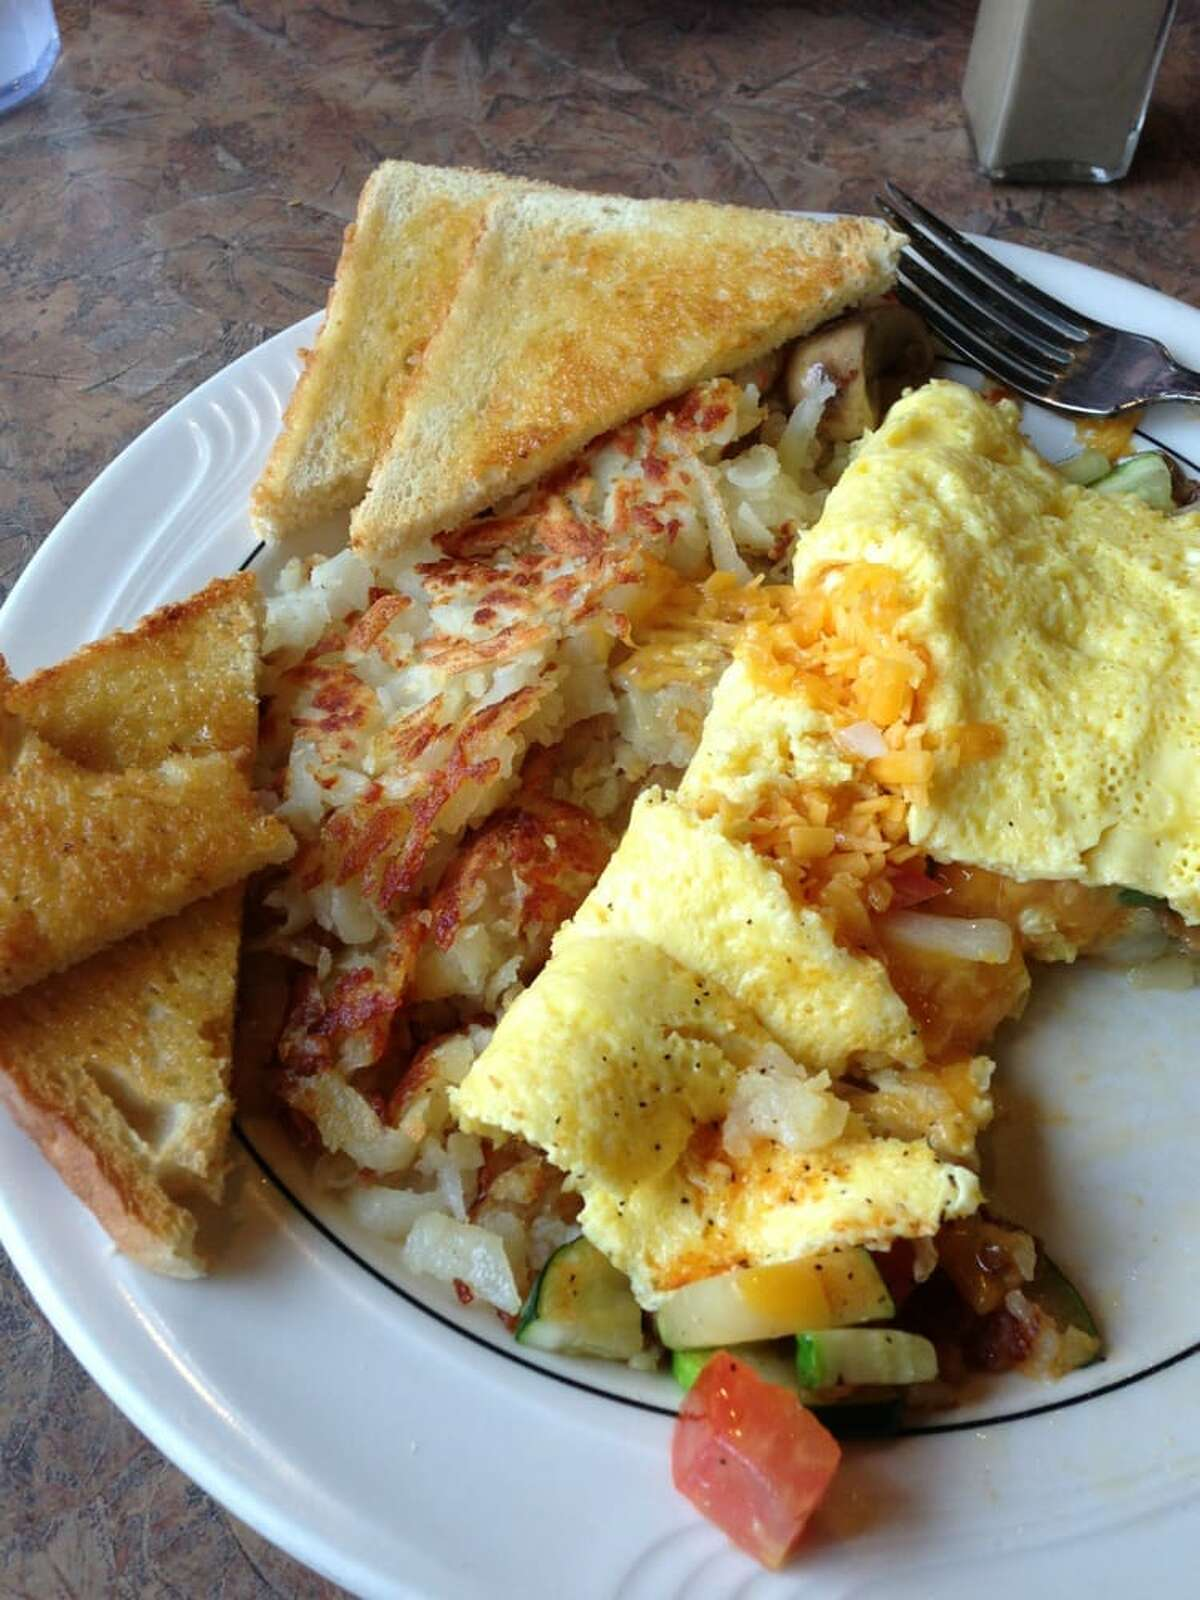 A few miles further up the highway, the Freeland Cafe & Lounge is again comforting longtime Whidbeyites with comfort food. Hours are 3 p.m. to 7 p.m. on Friday; Saturday and Sunday, 8 a.m. to 1 p.m. Call 360-331-9545. And here are their instructions: